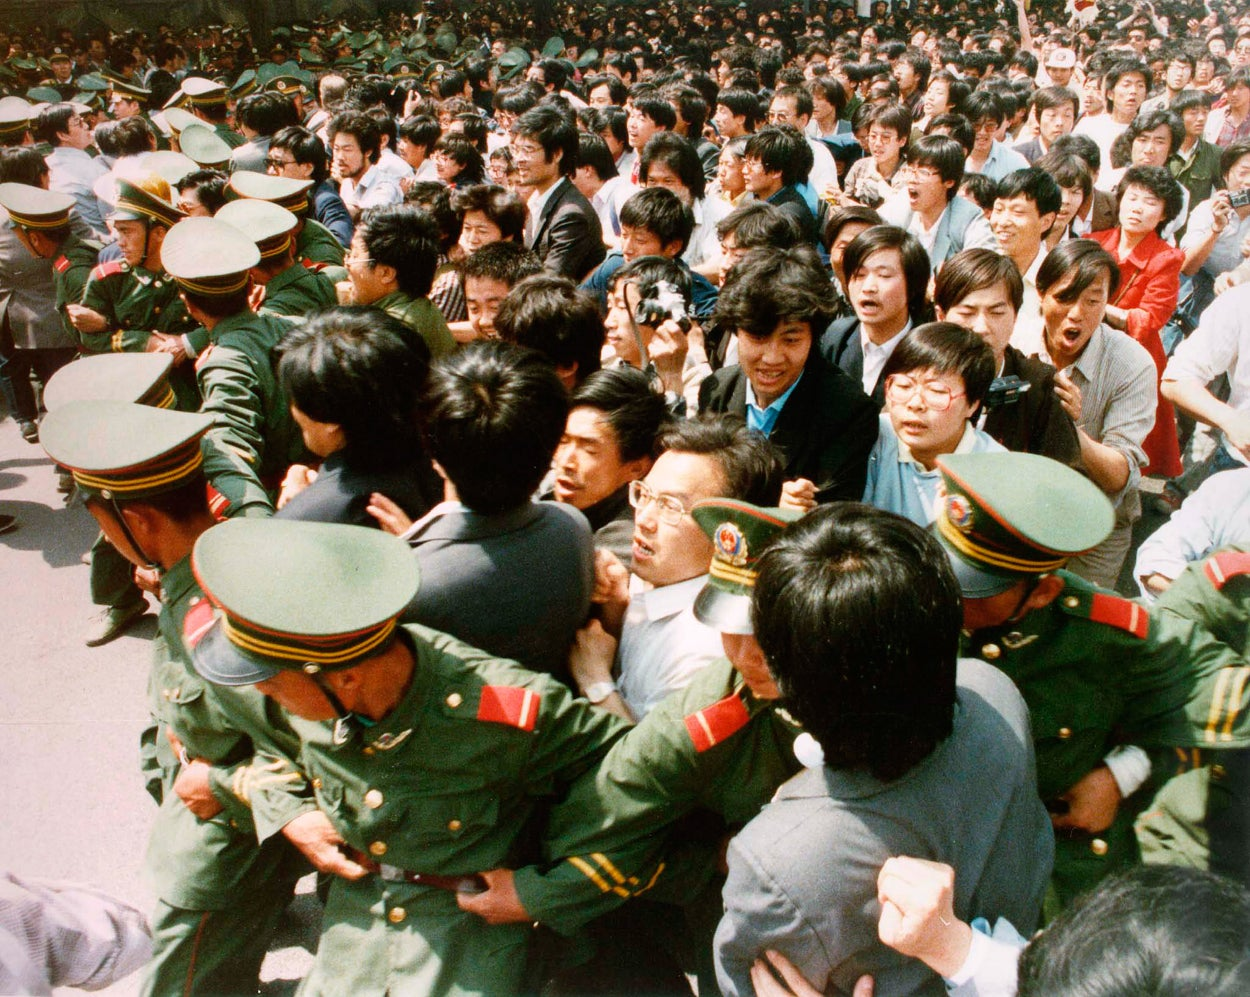 remembering the tiananmen square protests years later crowds of jubilant students surge through a police cordon before pouring into tiananmen square during a